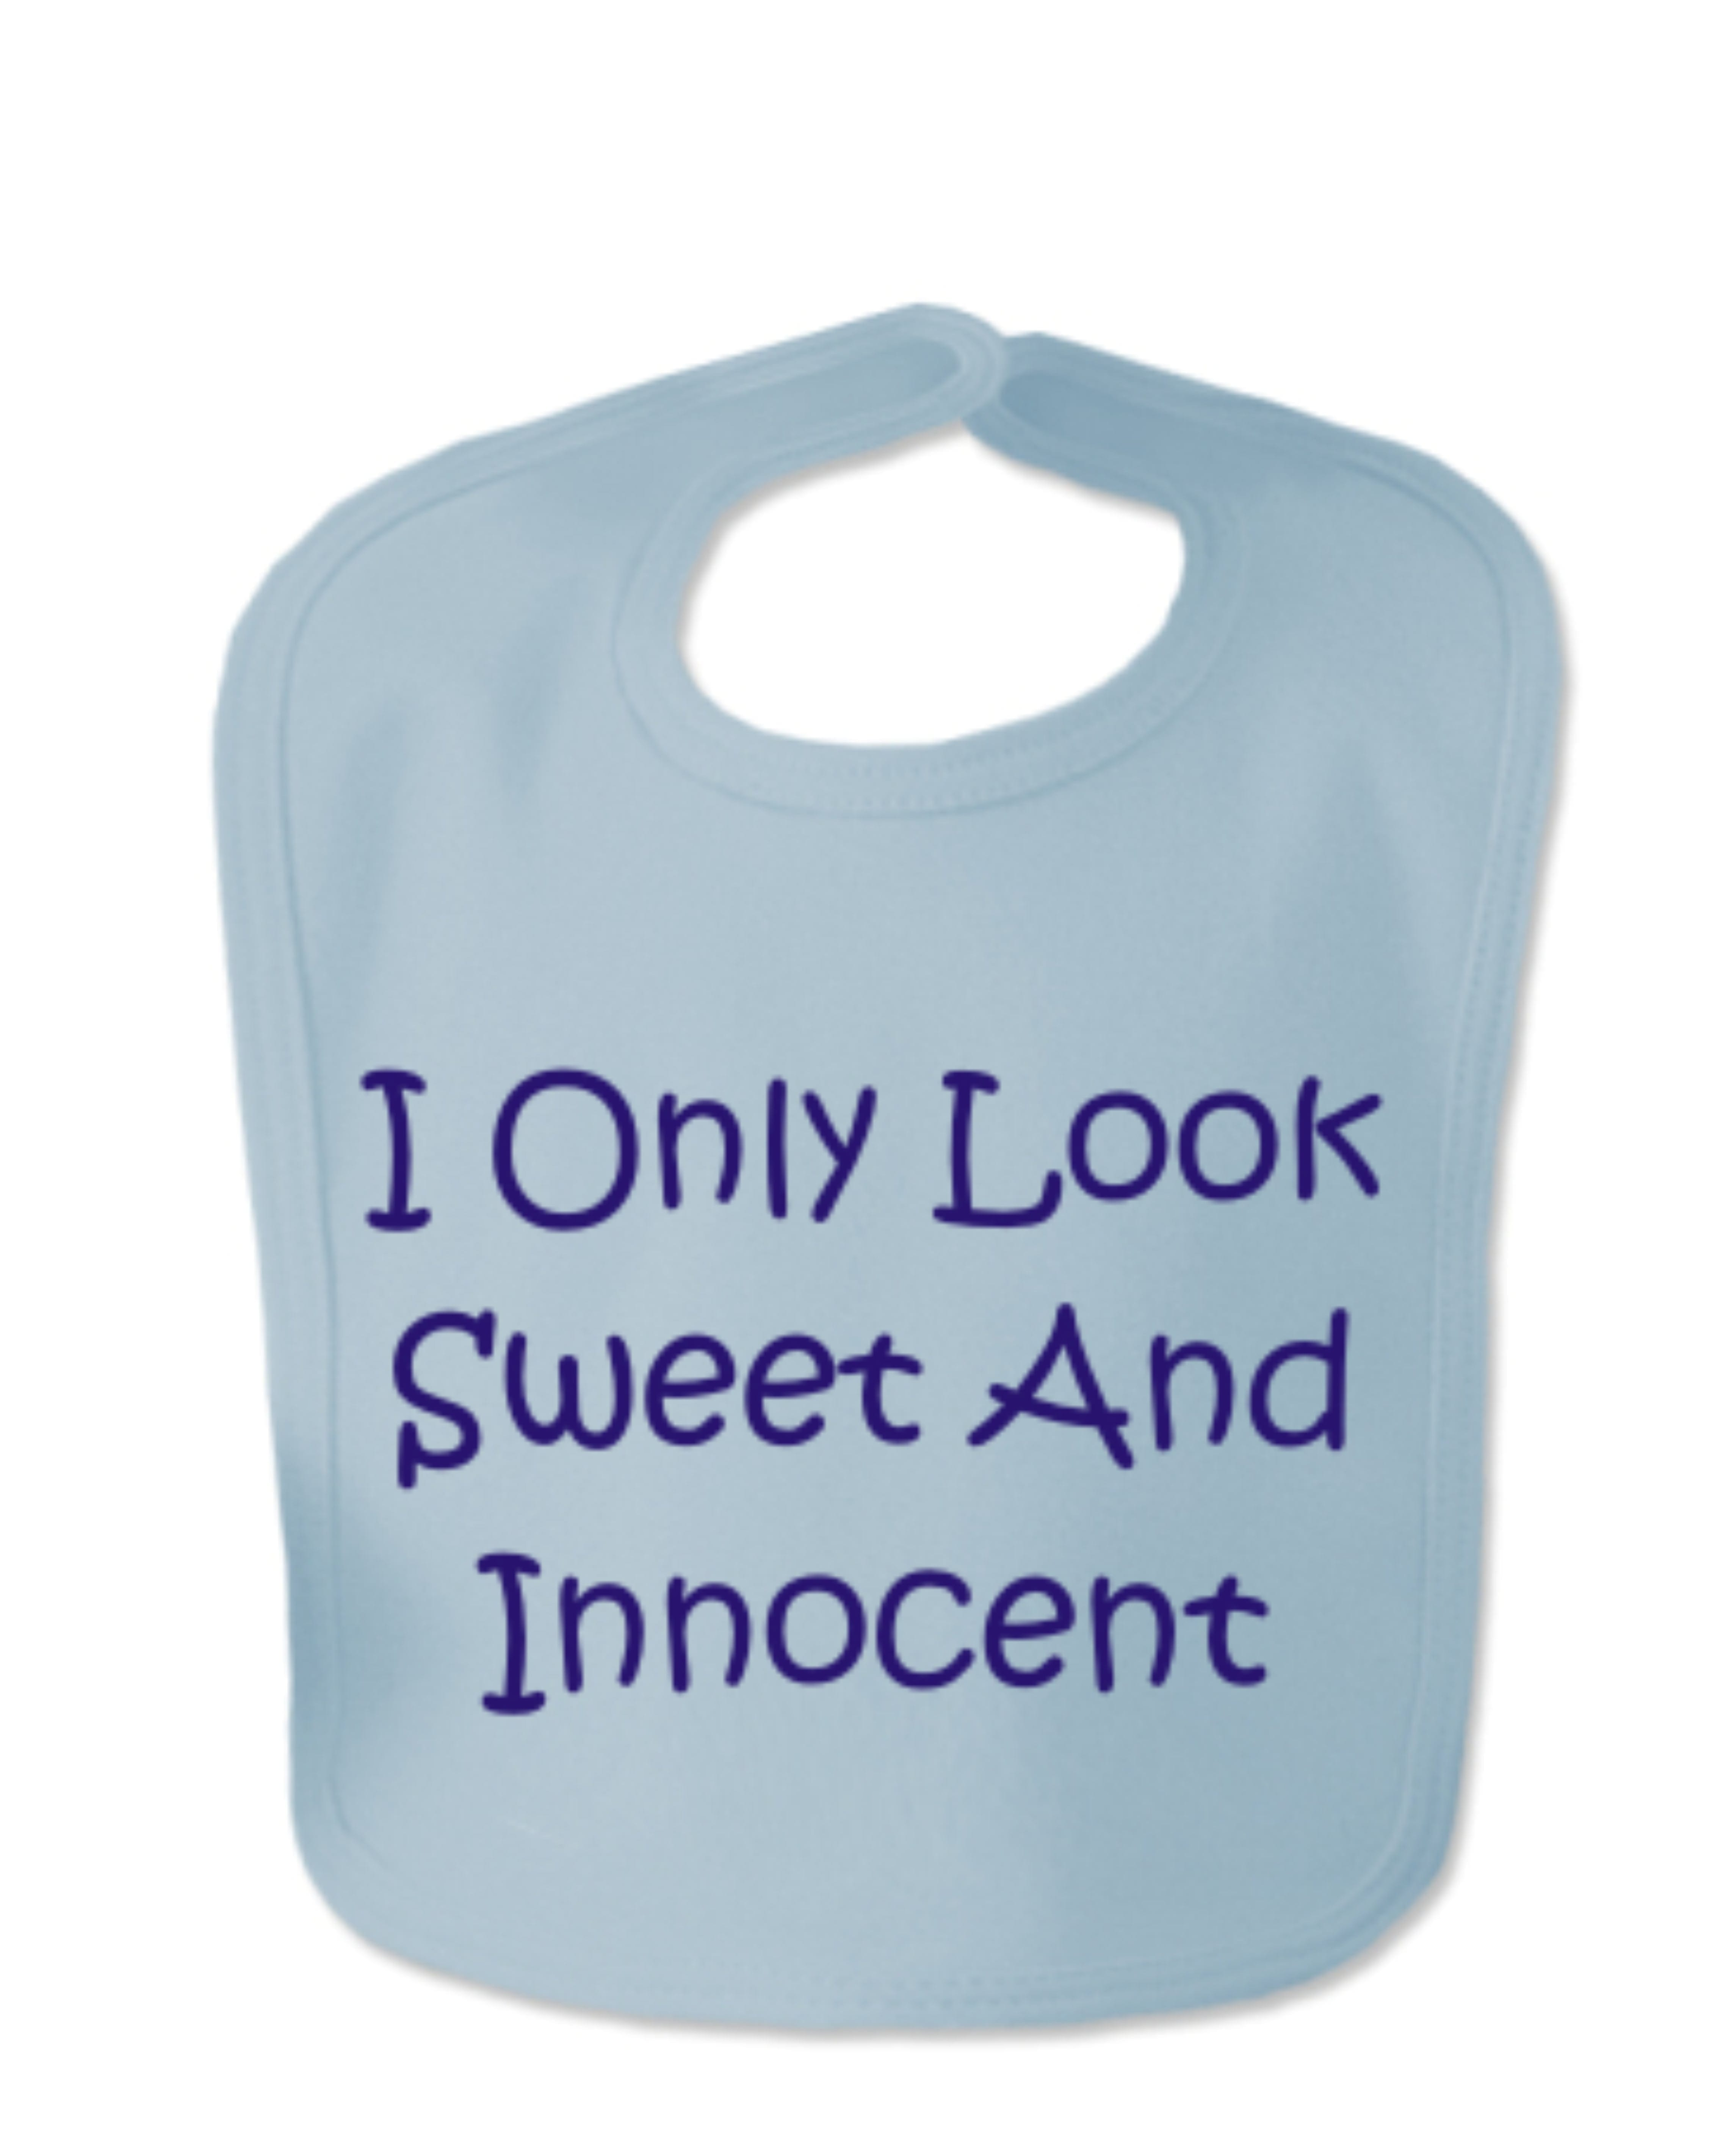 Baby Blue I Only Look Sweet And Innocent Velcro Baby Bib